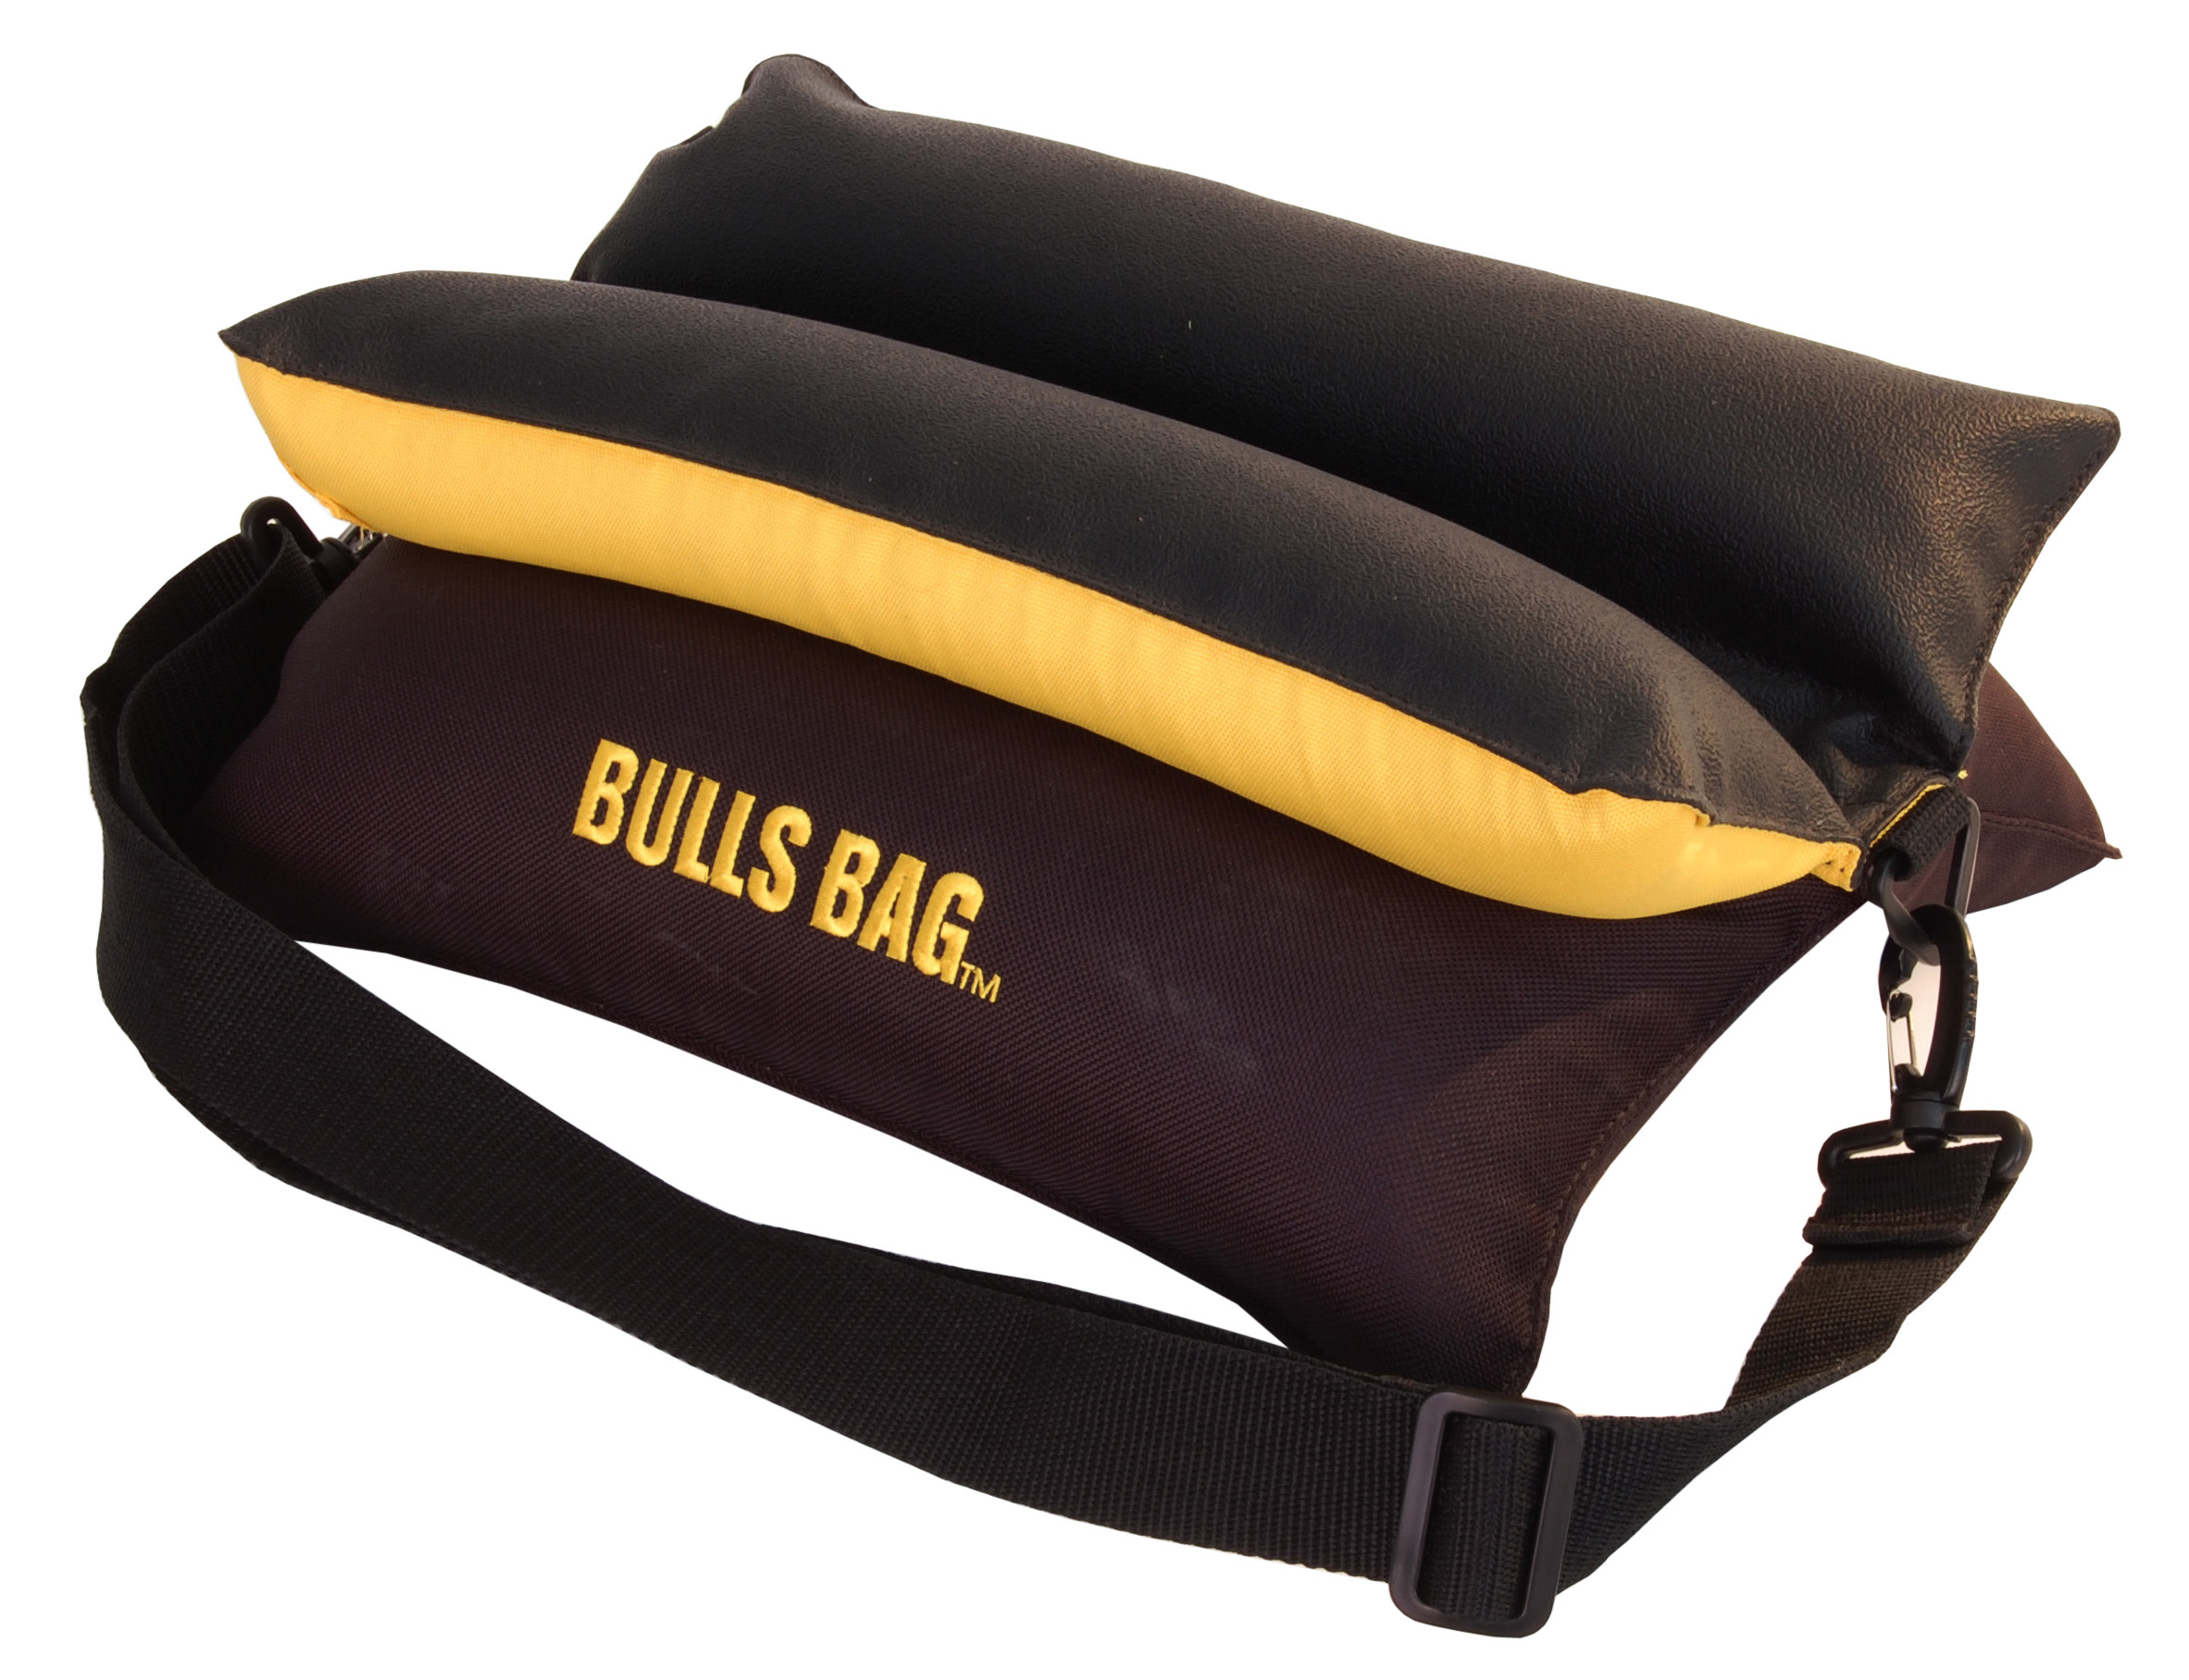 Bulls Bag Tuff-Tec Bench Shooting Rest - 15